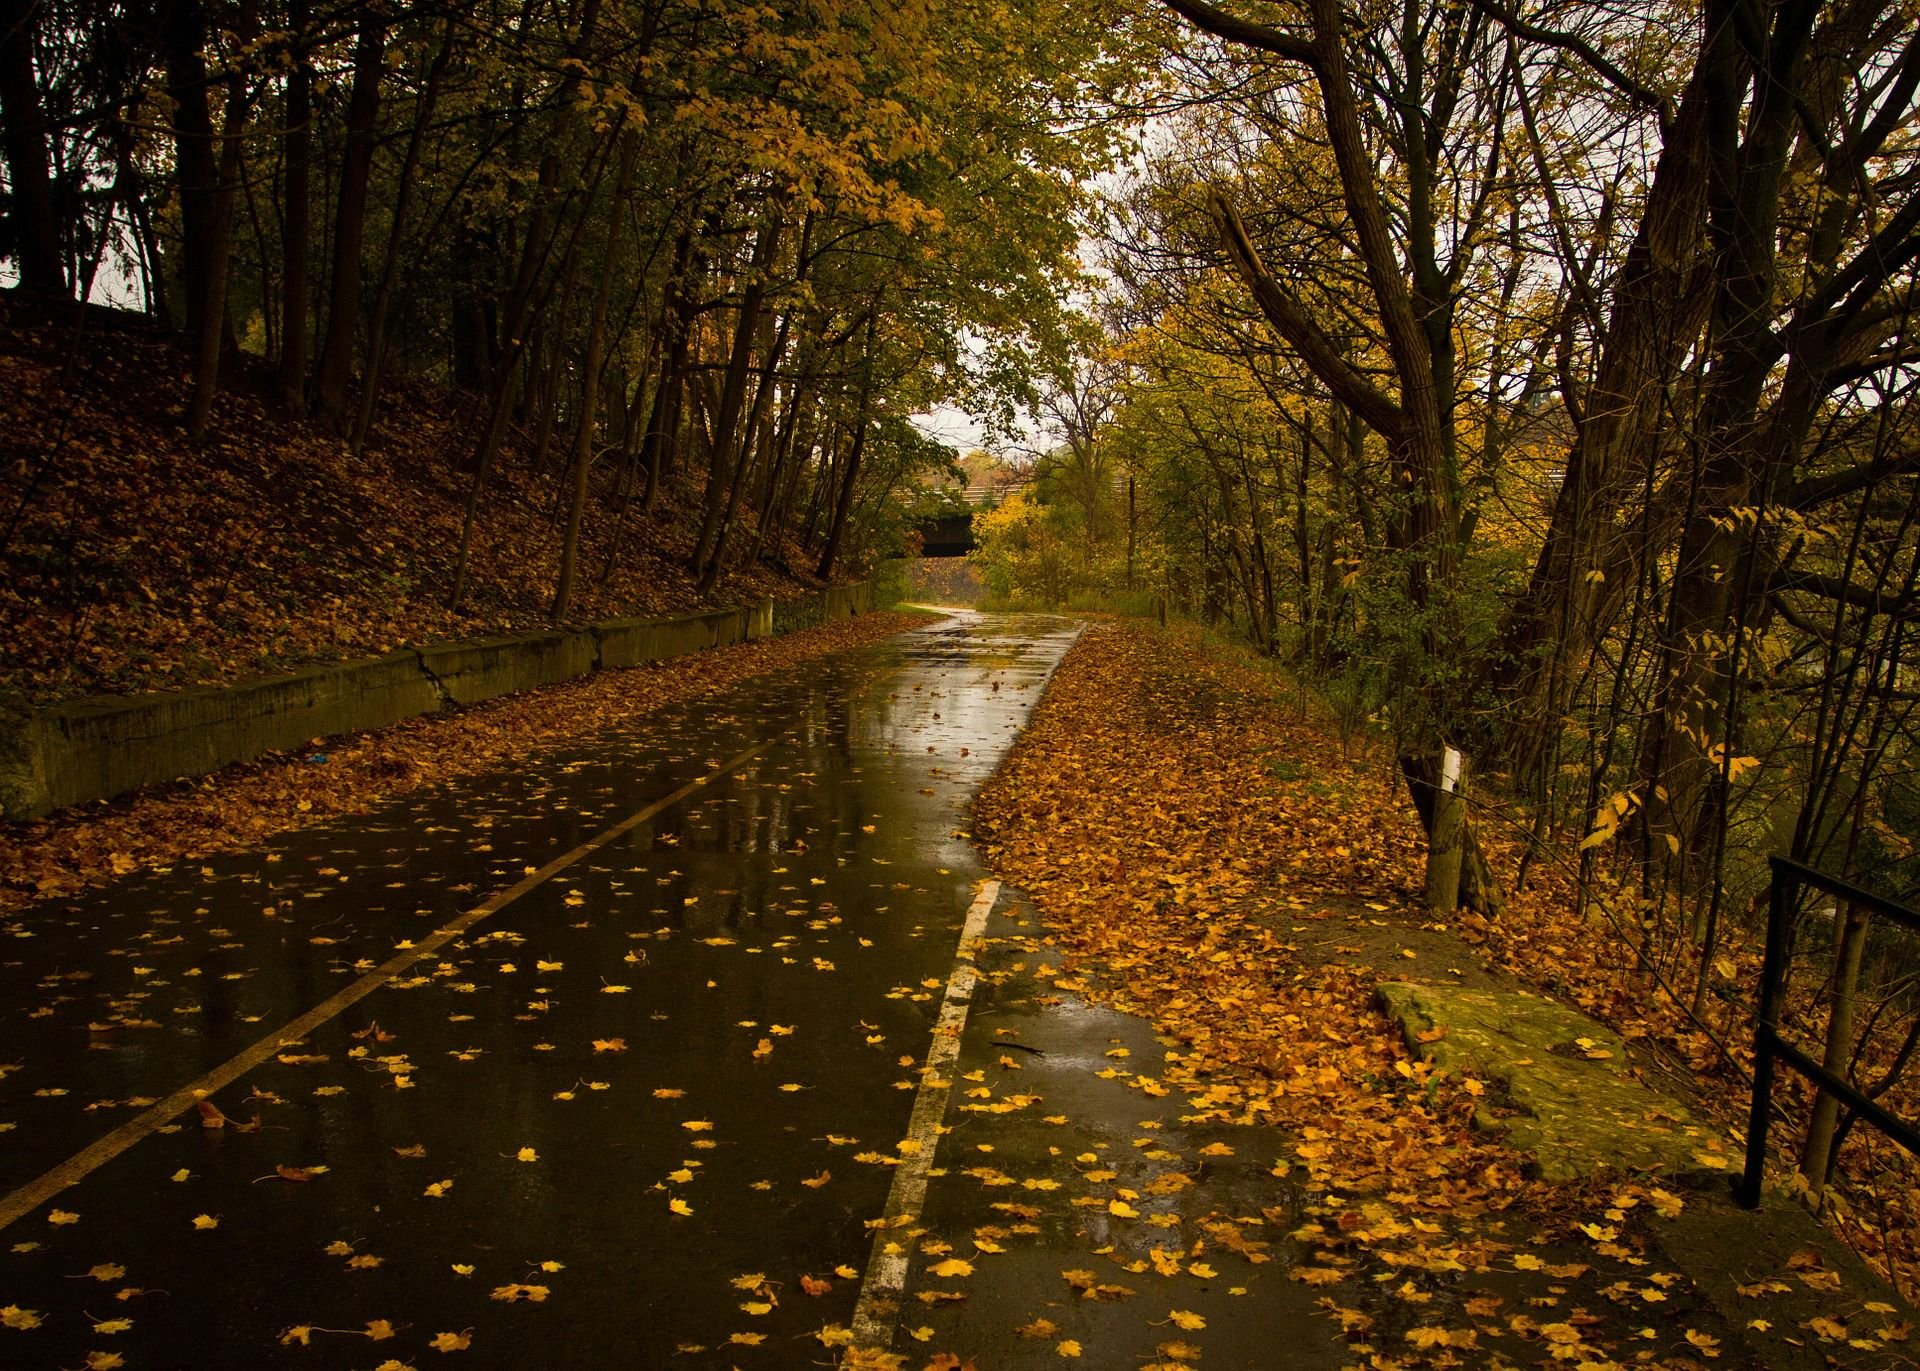 Wet Road Rainy Day Leaves Fall Autumn Hd Wallpaper